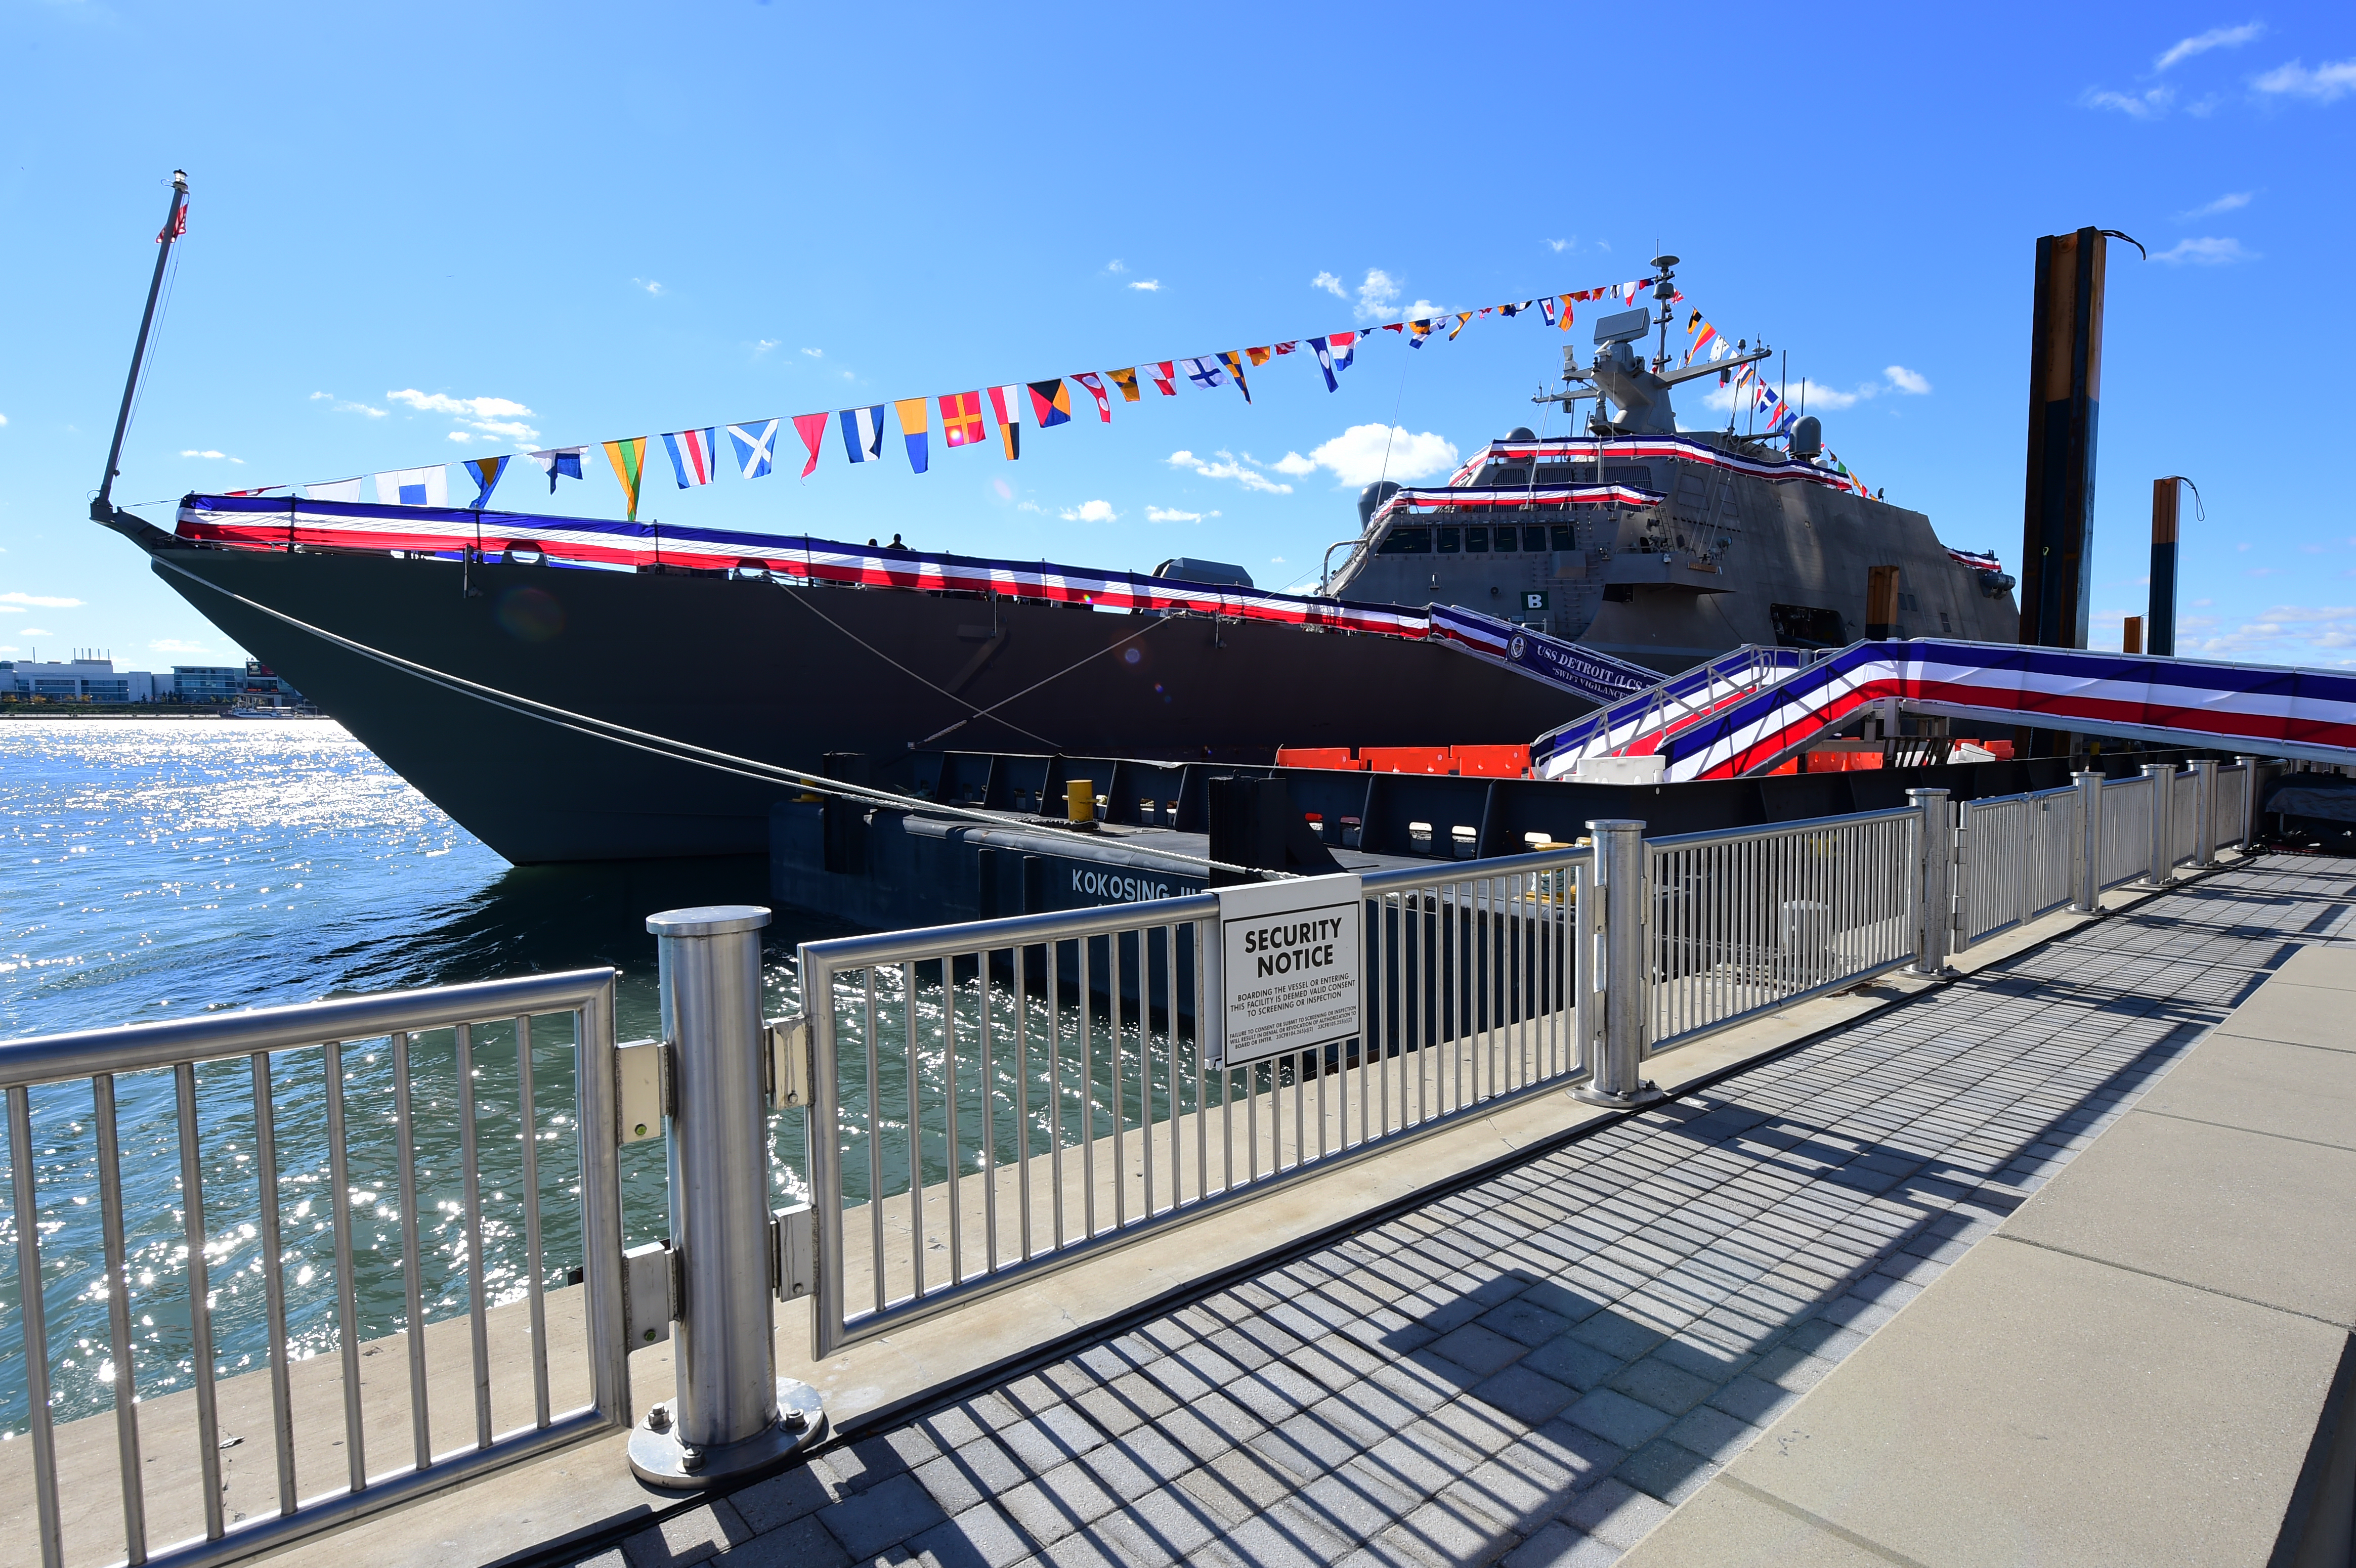 File:Commissioning of USS Detroit (LCS-7) on 22 October 2016